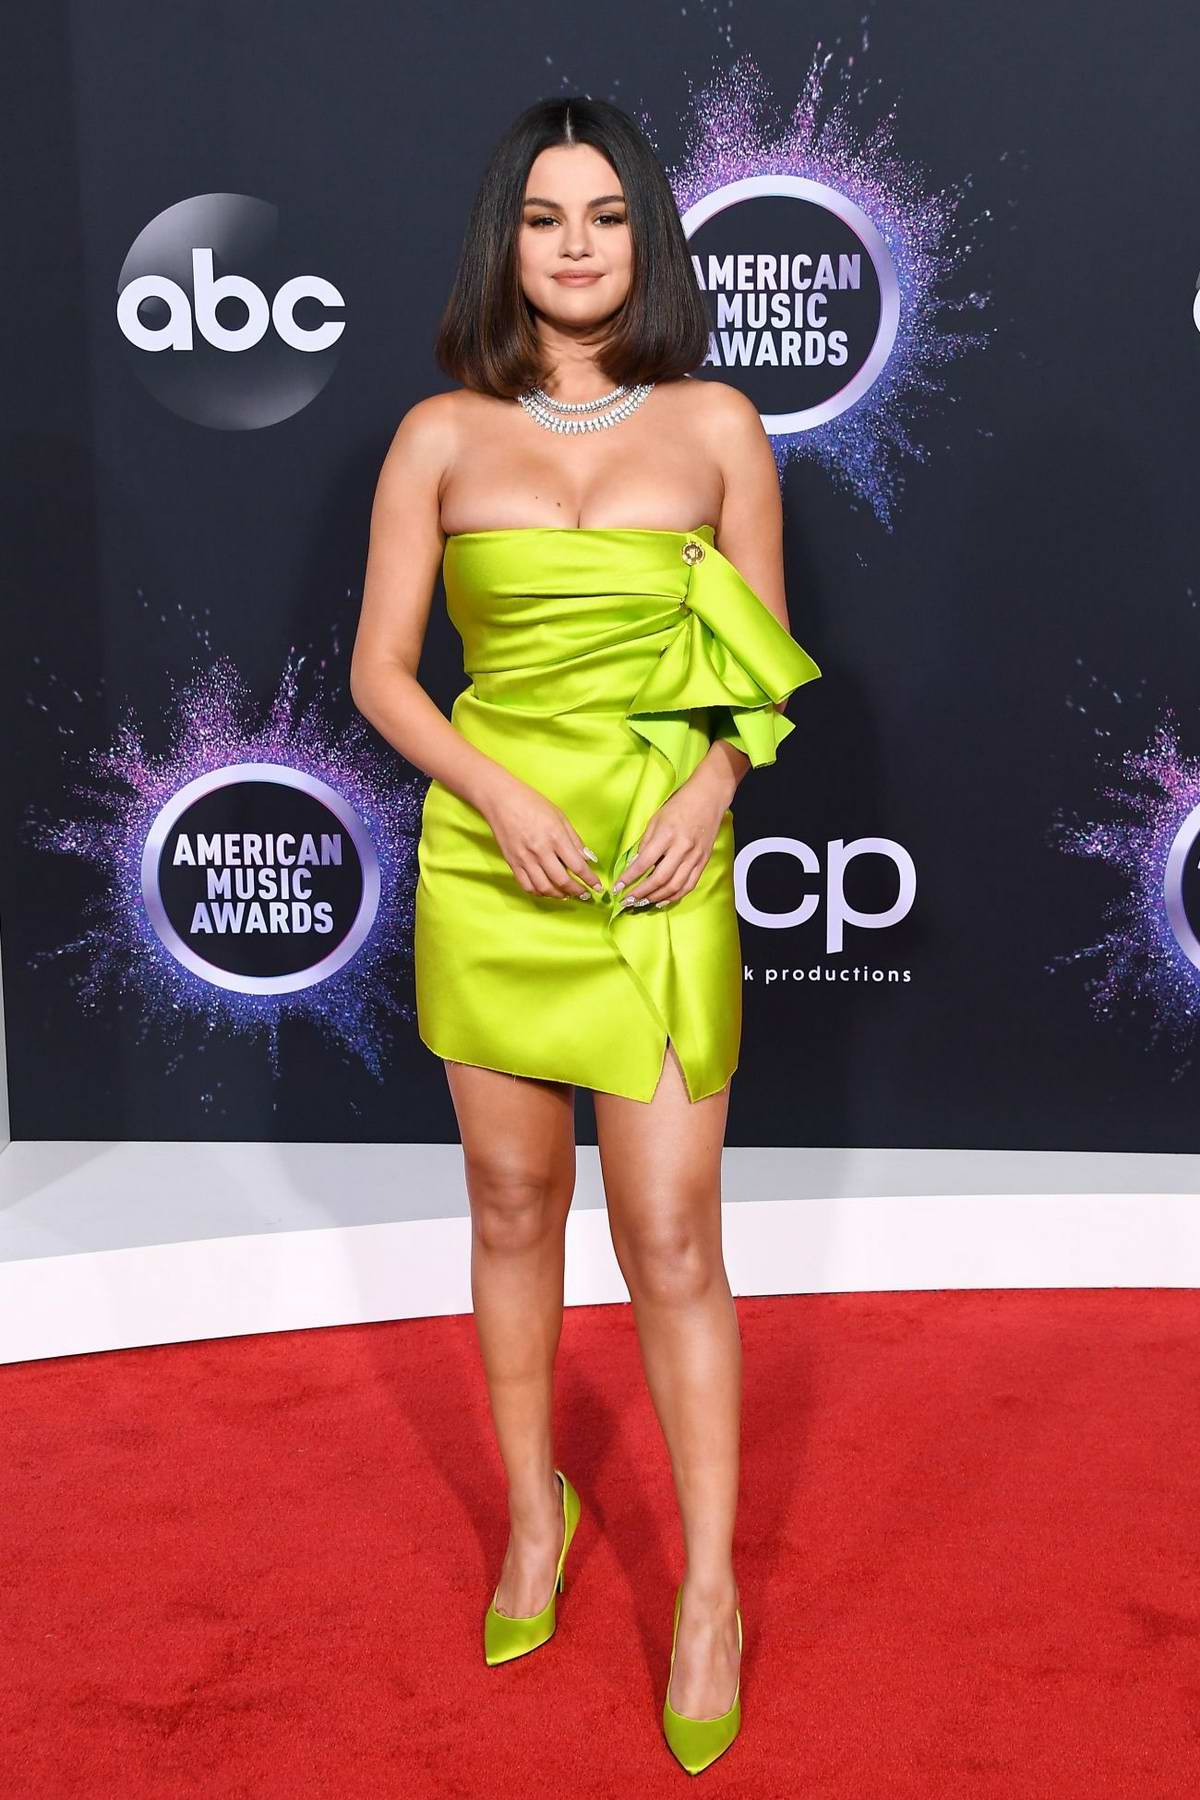 Selena Gomez attends the 2019 American Music Awards at Microsoft Theater in Los Angeles